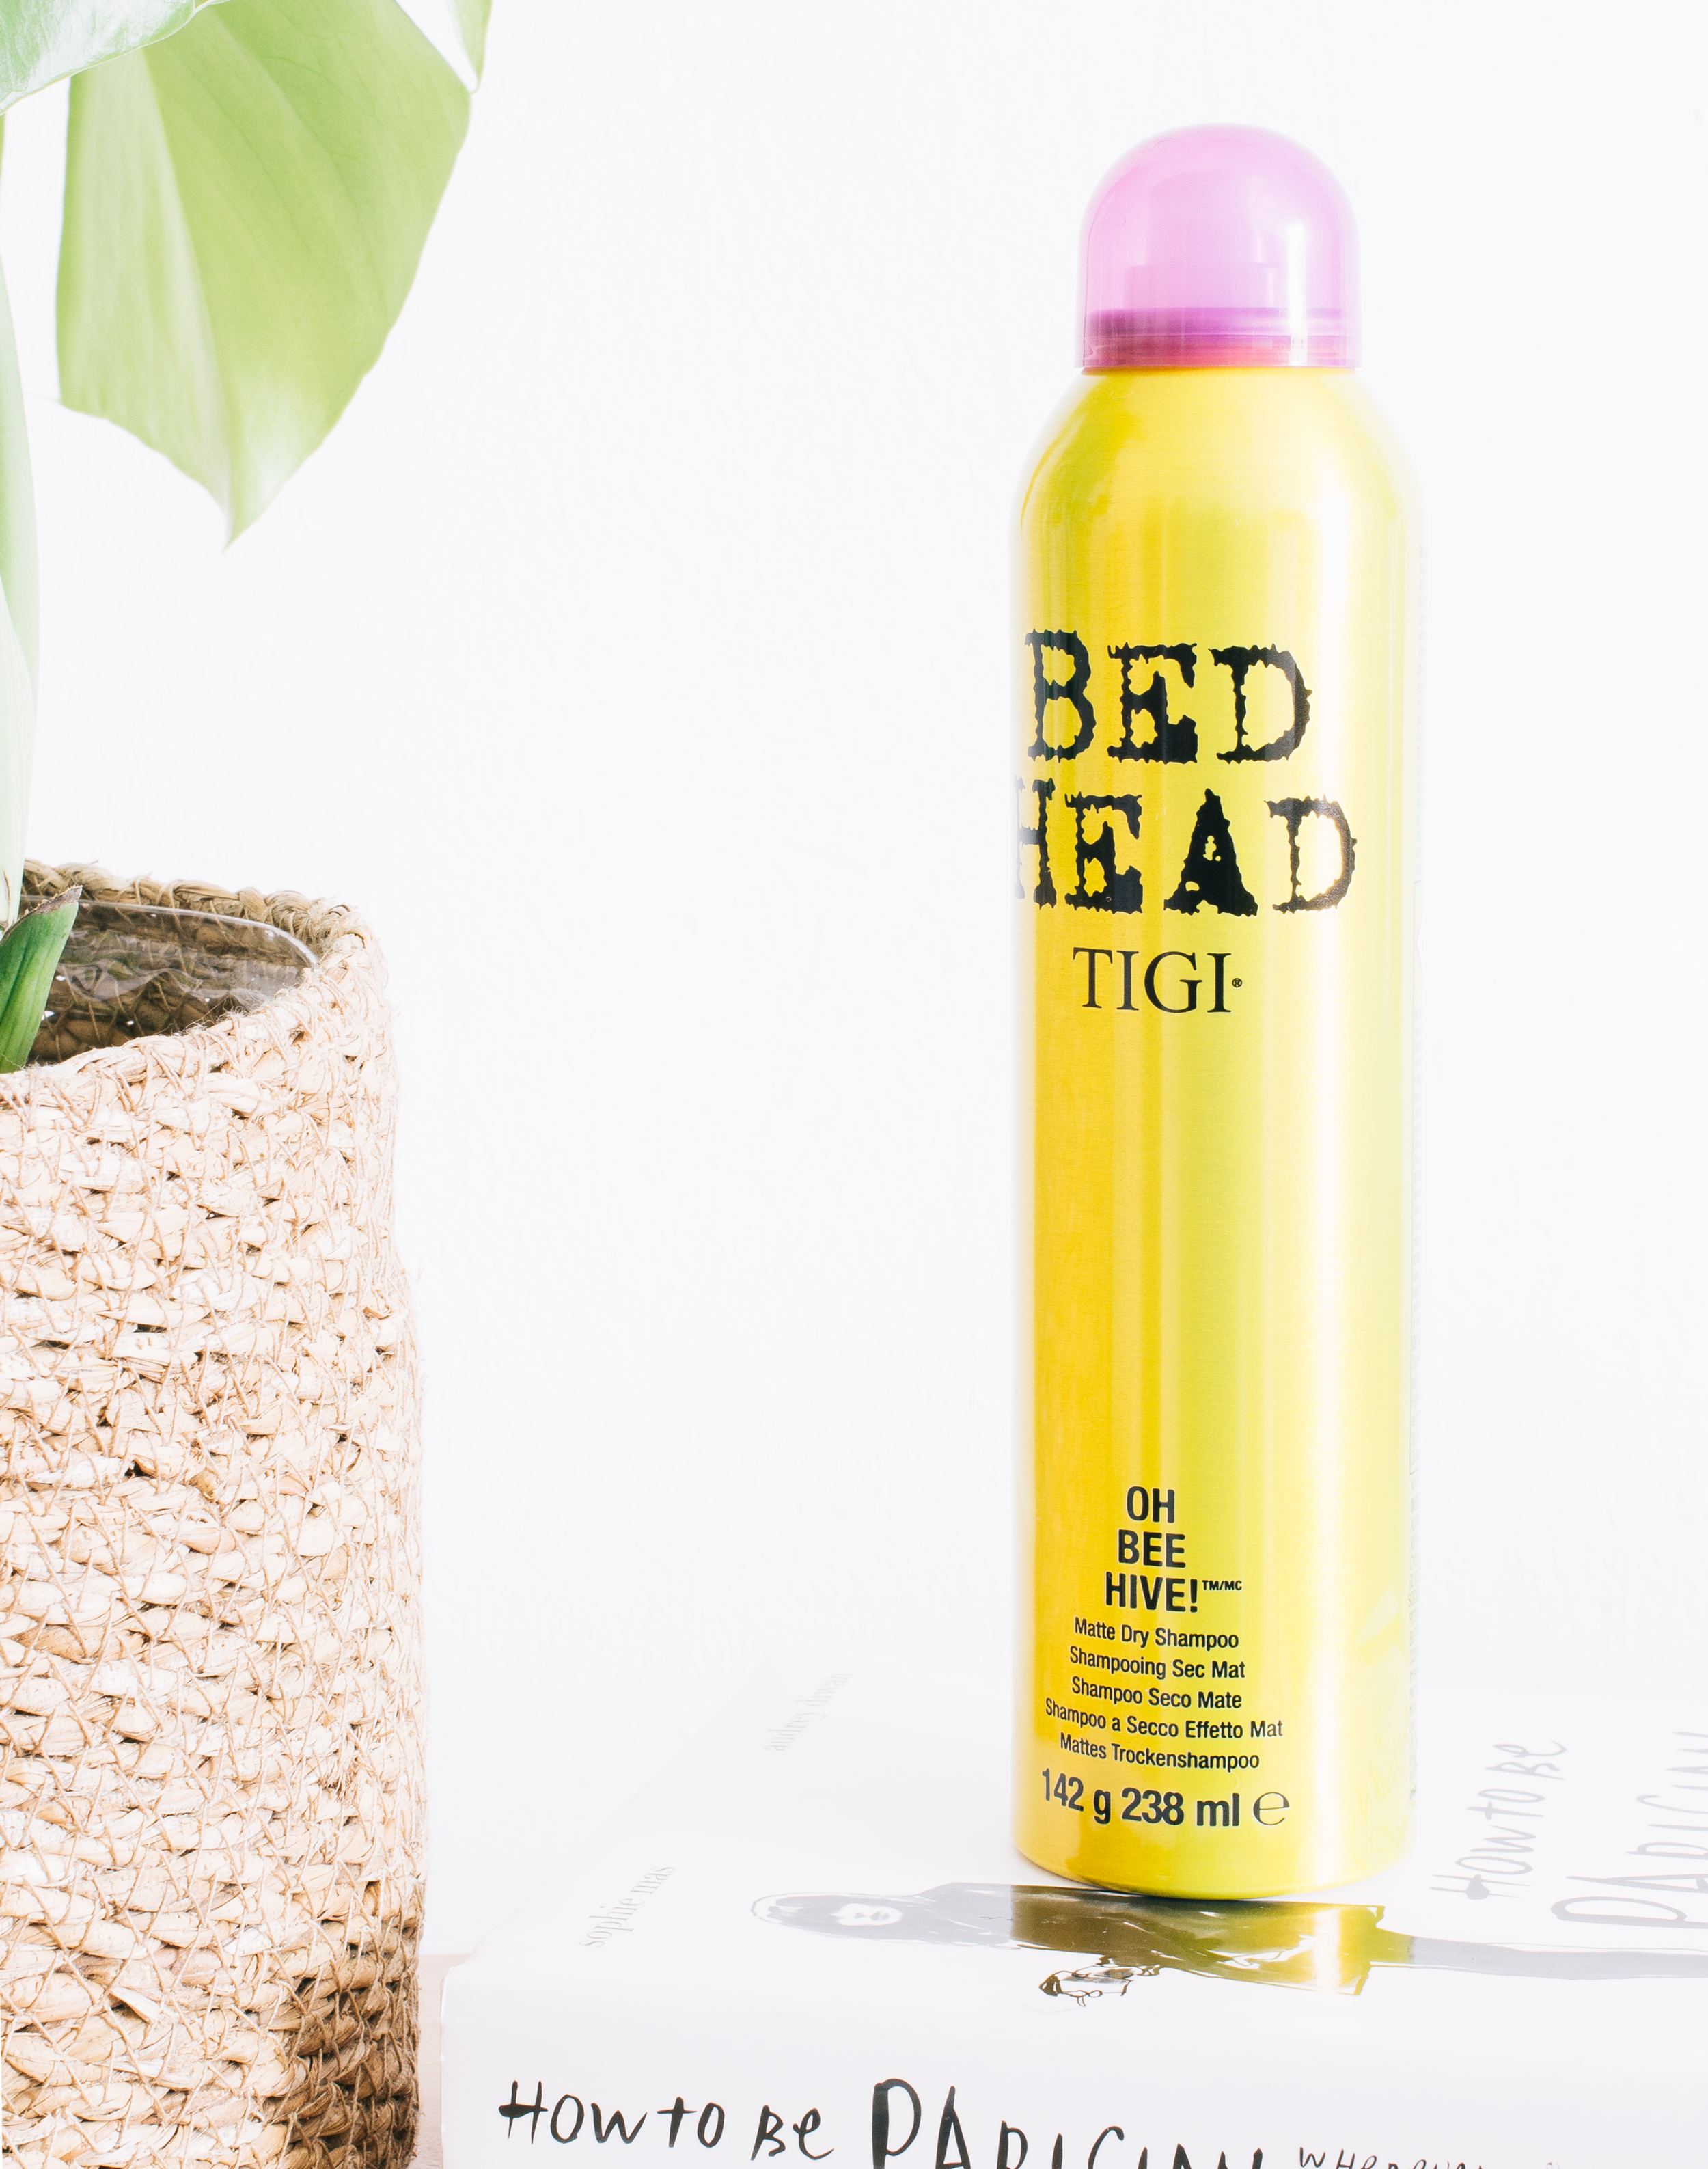 bed head tigi oh bee hive*  - A hybrid item from Tigi, this is a dry shampoo and a texture spray which is exactly what my hair needs. If you hadn't noticed by the way I wear my hair at the moment then I like to look like I've been dragged through a bush. And this helps me achieve that look exactly as it adds a lot of volume without feeling crunchy or sticky but it also absorbs any oil. If you like your hair to resemble glass then you will not like this is as it quite matte but otherwise it's a fantastic product. And it smells absolutely divine, I can't quite put my finger on what it is but it's quite sweet and almost acts like a perfume for your hair.